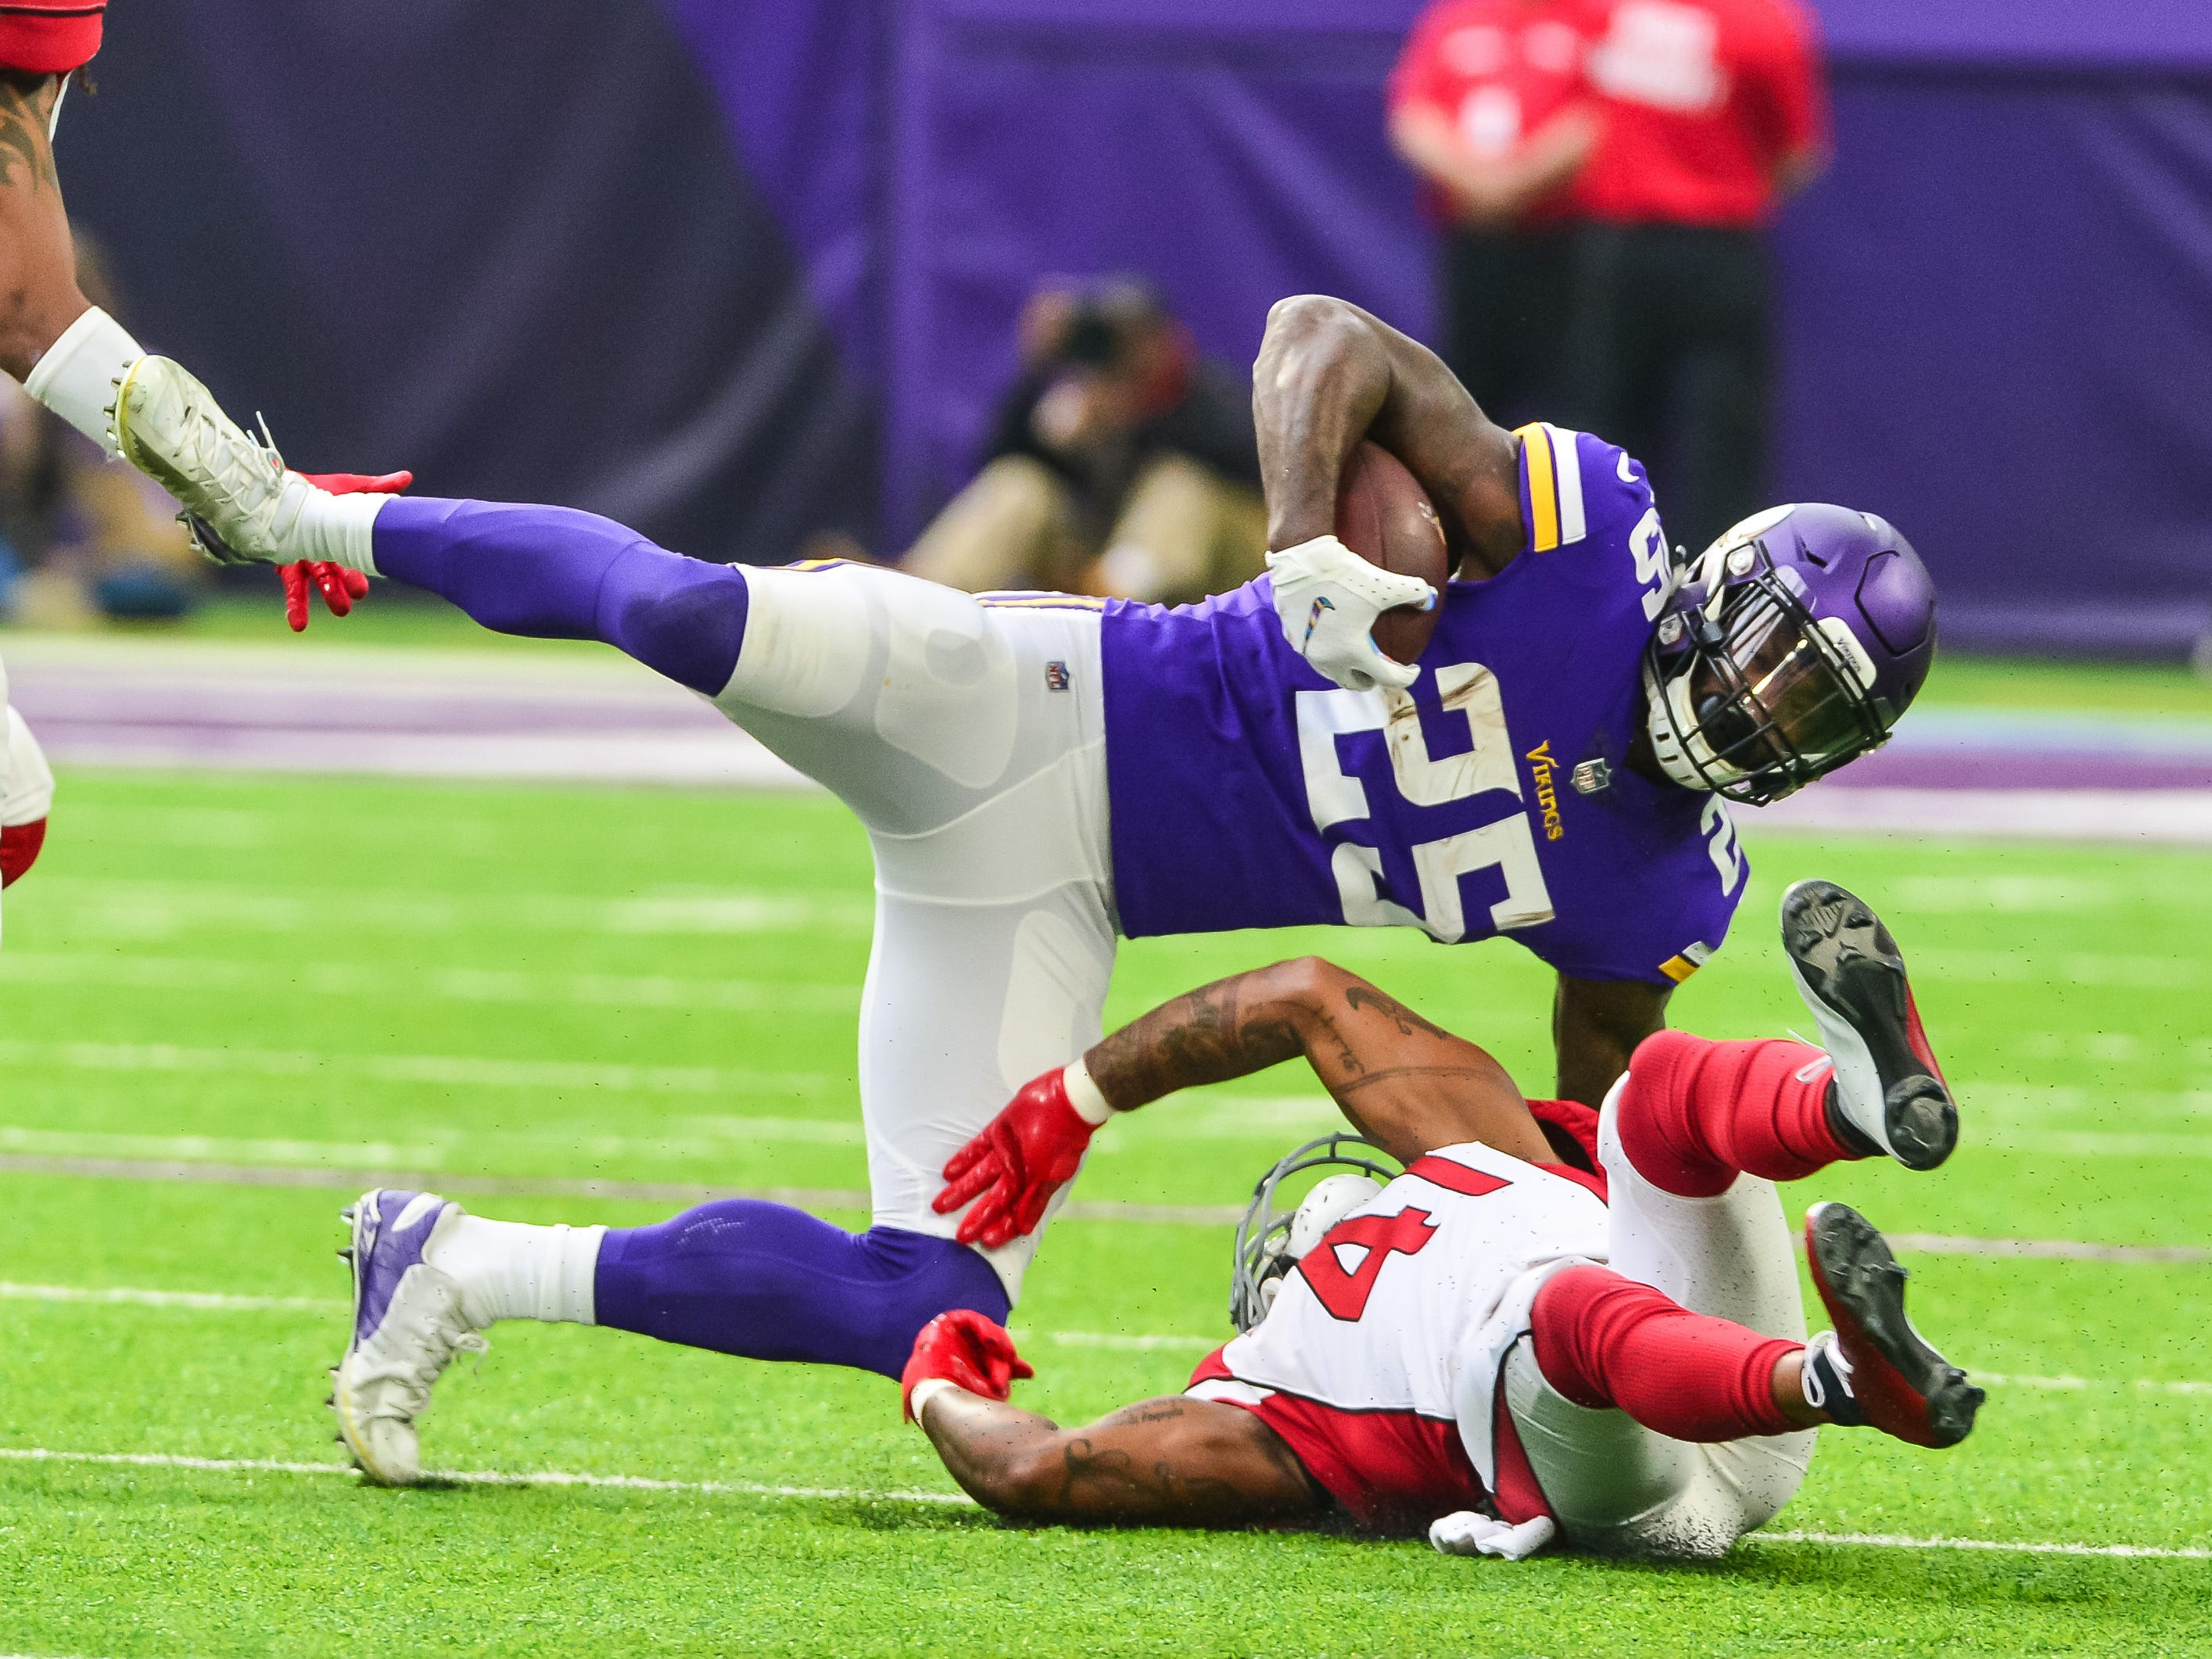 Oct 14, 2018; Minneapolis, MN, USA; Minnesota Vikings running back Latavius Murray (25) is tackled by Arizona Cardinals free safety Antoine Bethea (41) during the first quarter at U.S. Bank Stadium. Mandatory Credit: Jeffrey Becker-USA TODAY Sports